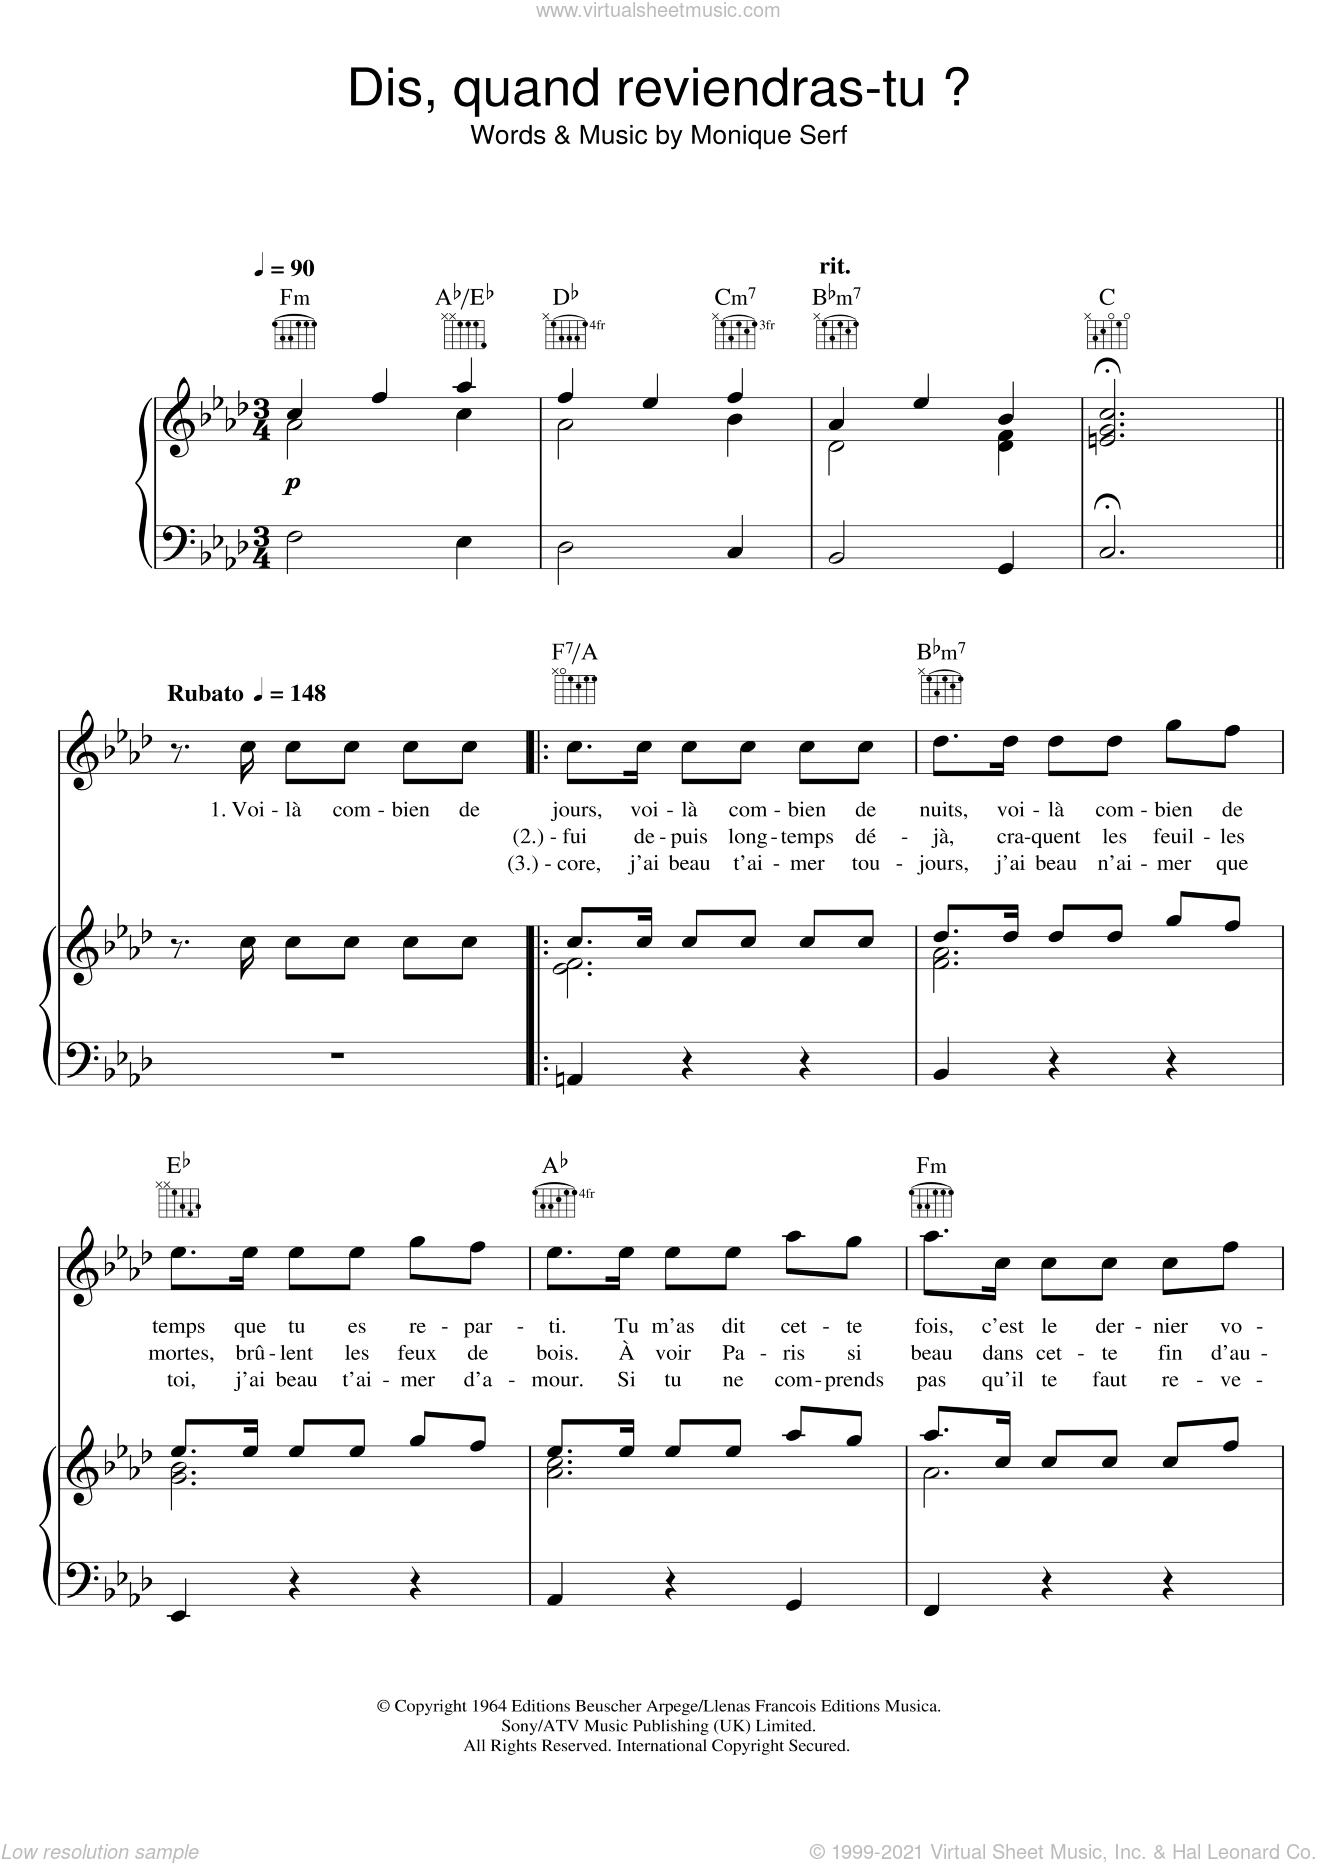 Dis, Quand Reviendras Tu ? sheet music for voice, piano or guitar by Barbara and Monique Serf, intermediate skill level